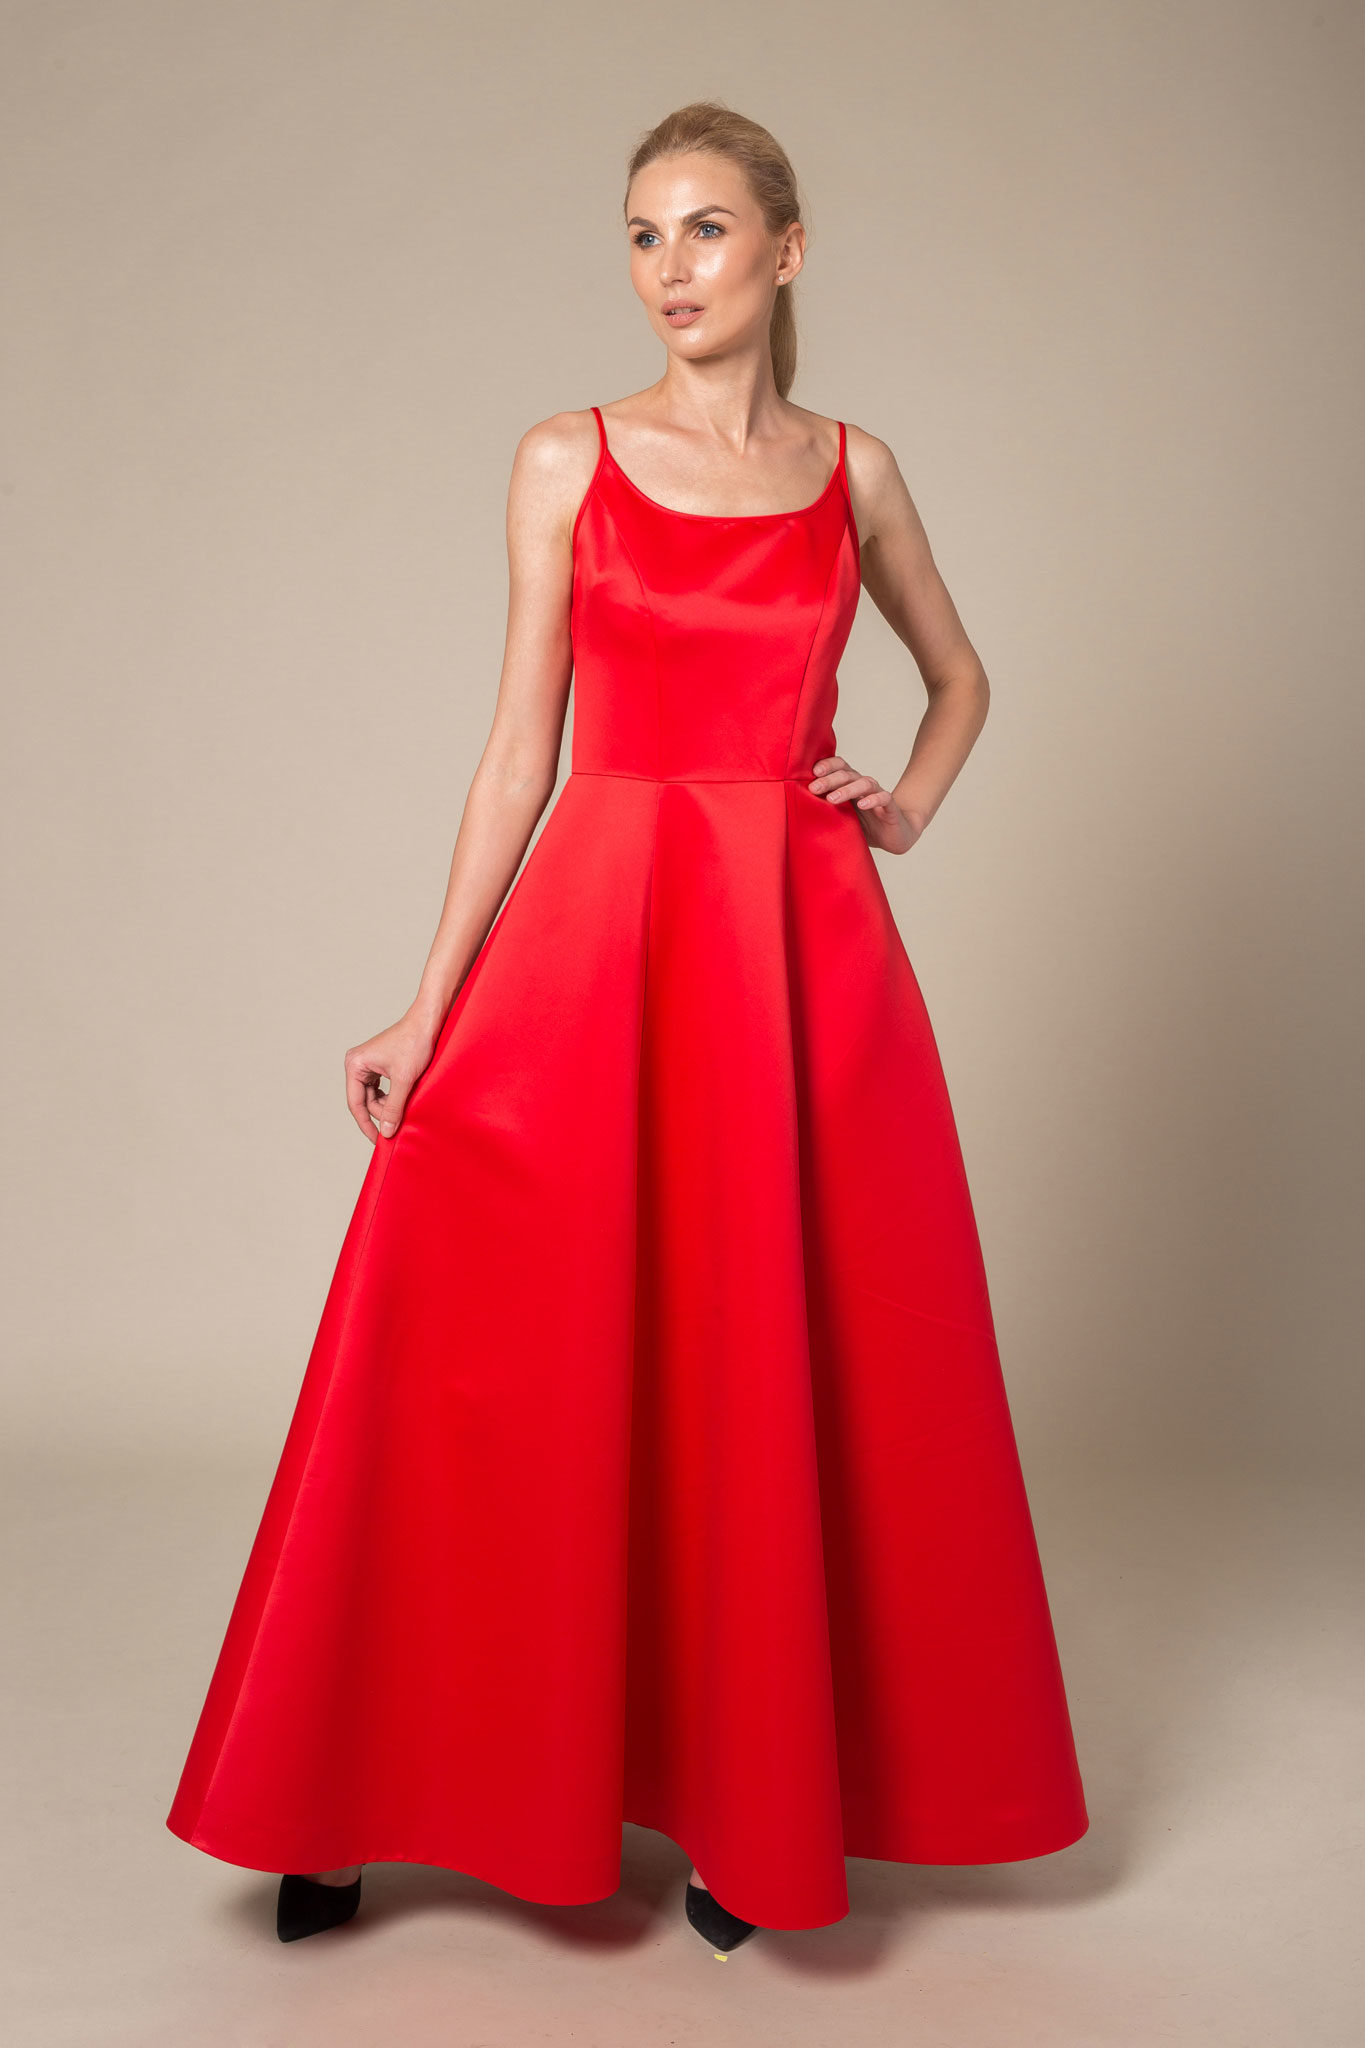 Red floor length evening dress